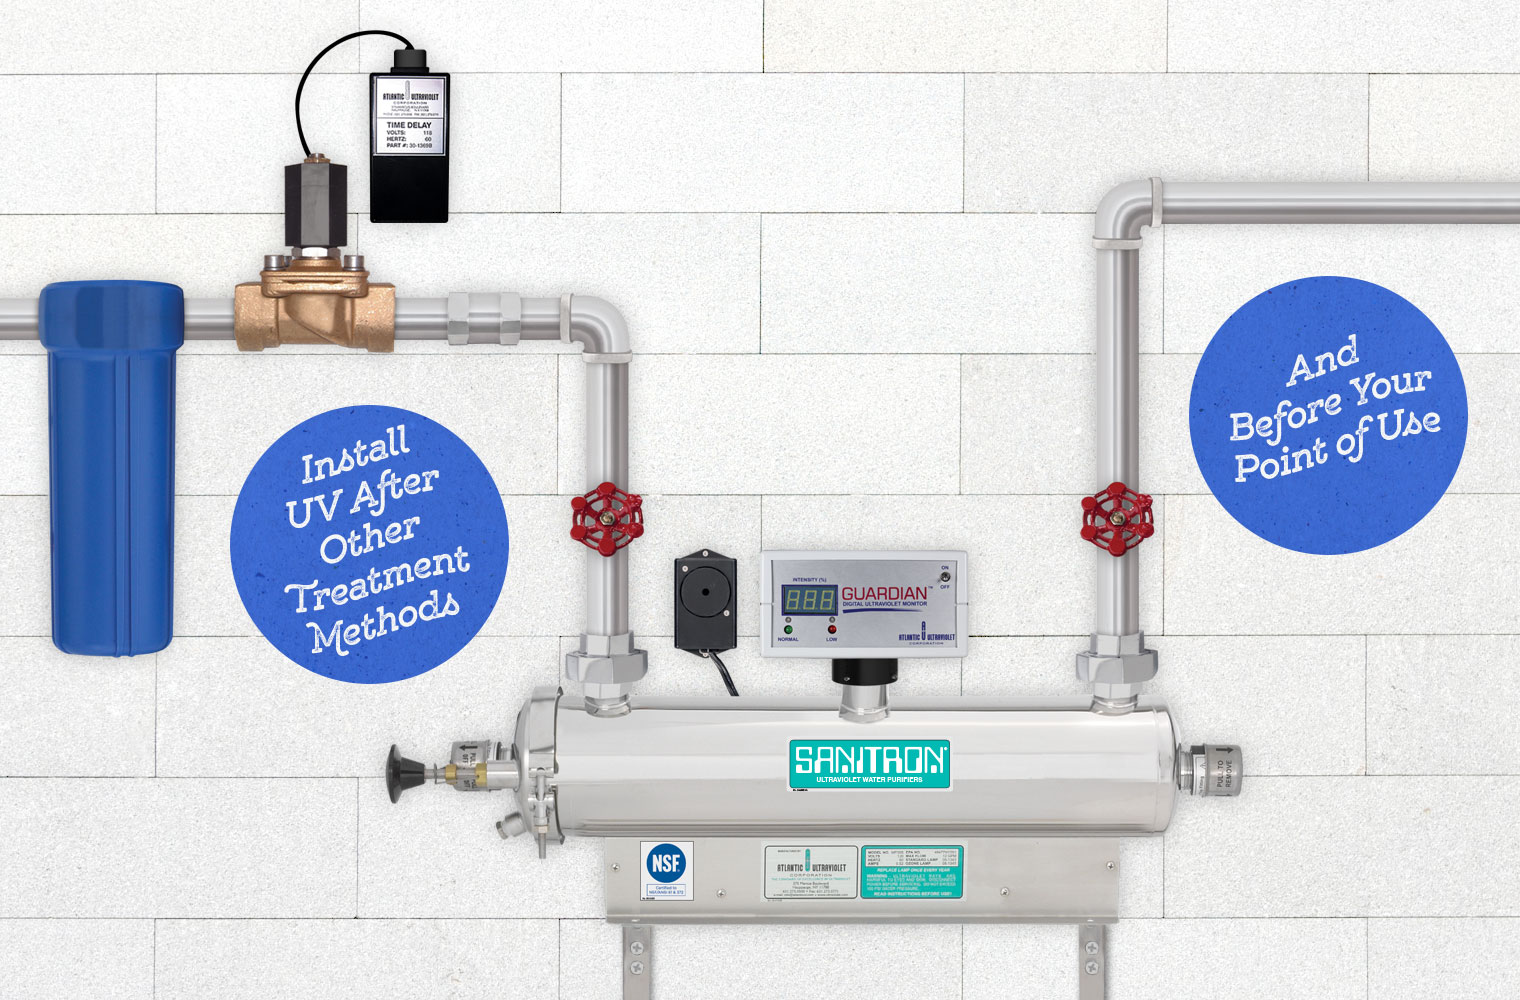 Sanitron UV Water Purifier Installed After Other Treatments, Before Point of Use